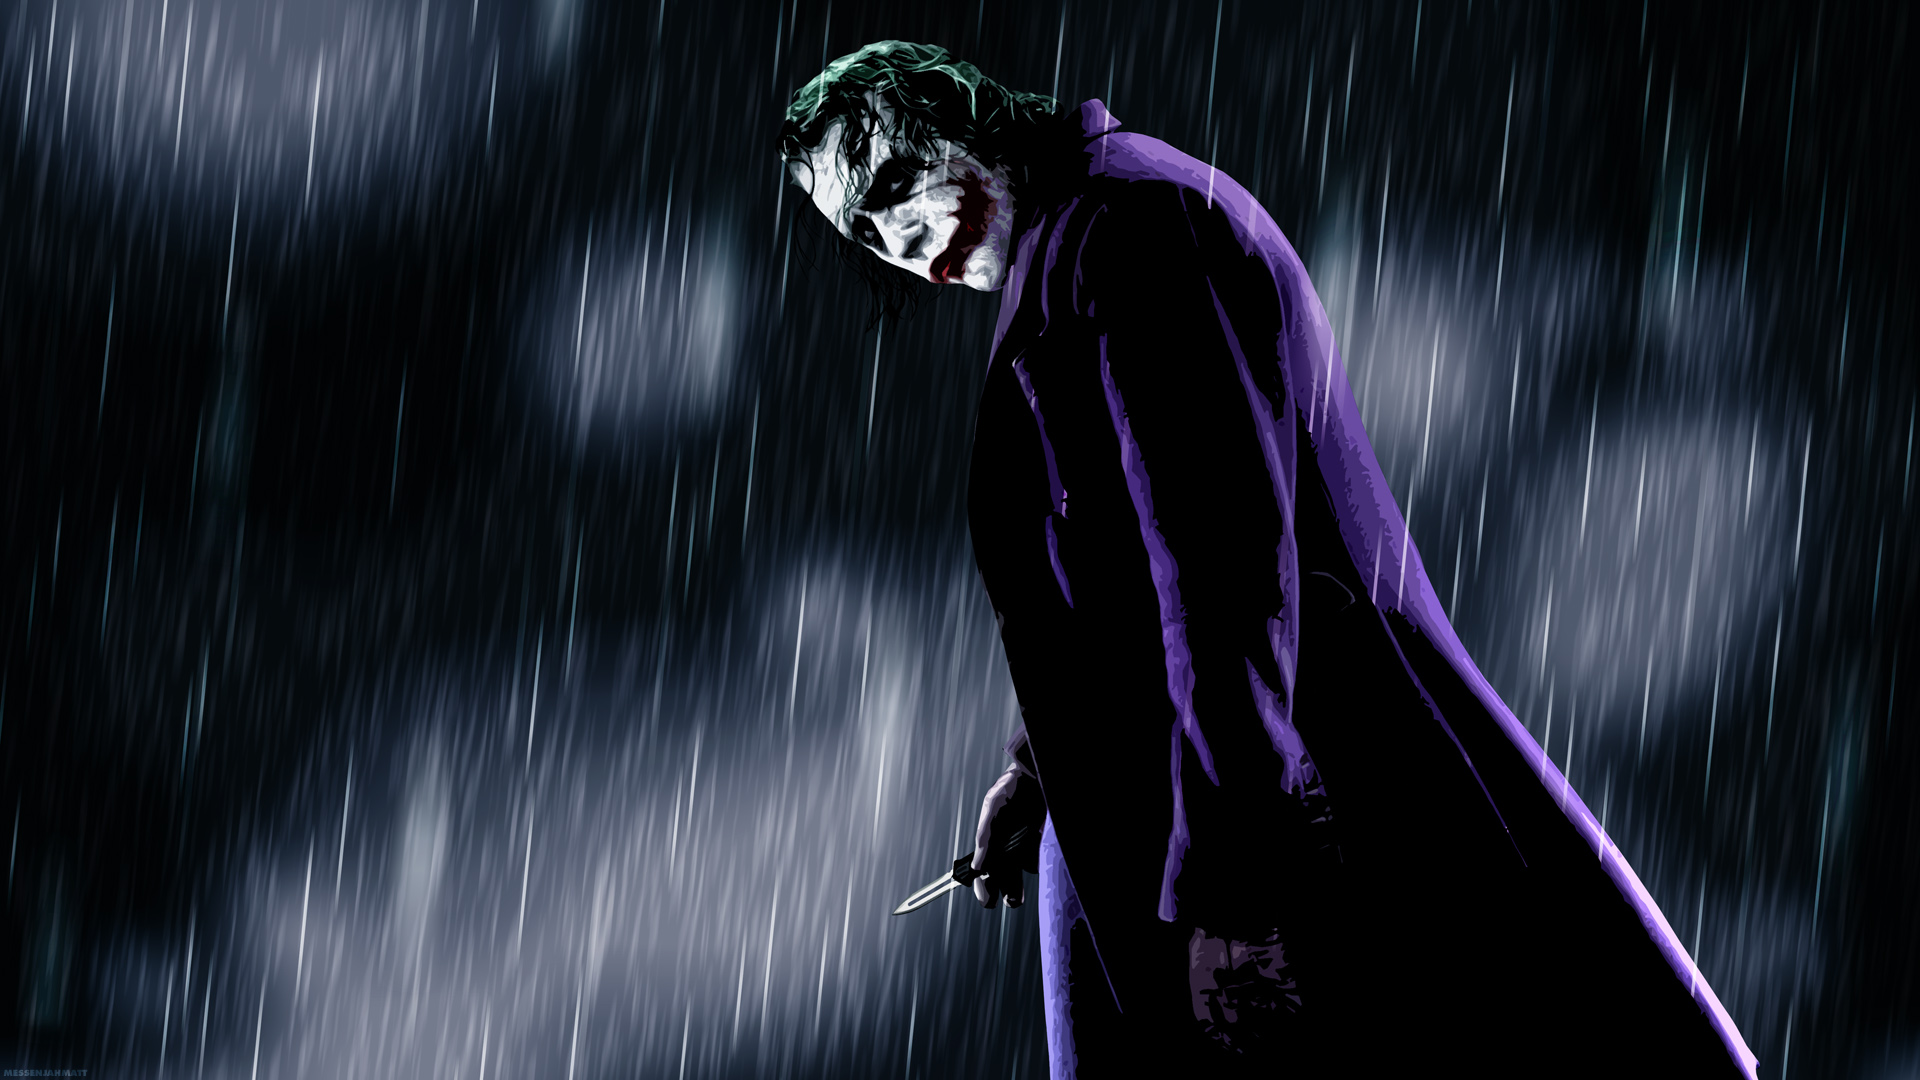 joker   The Joker Wallpaper 28092695 1920x1080